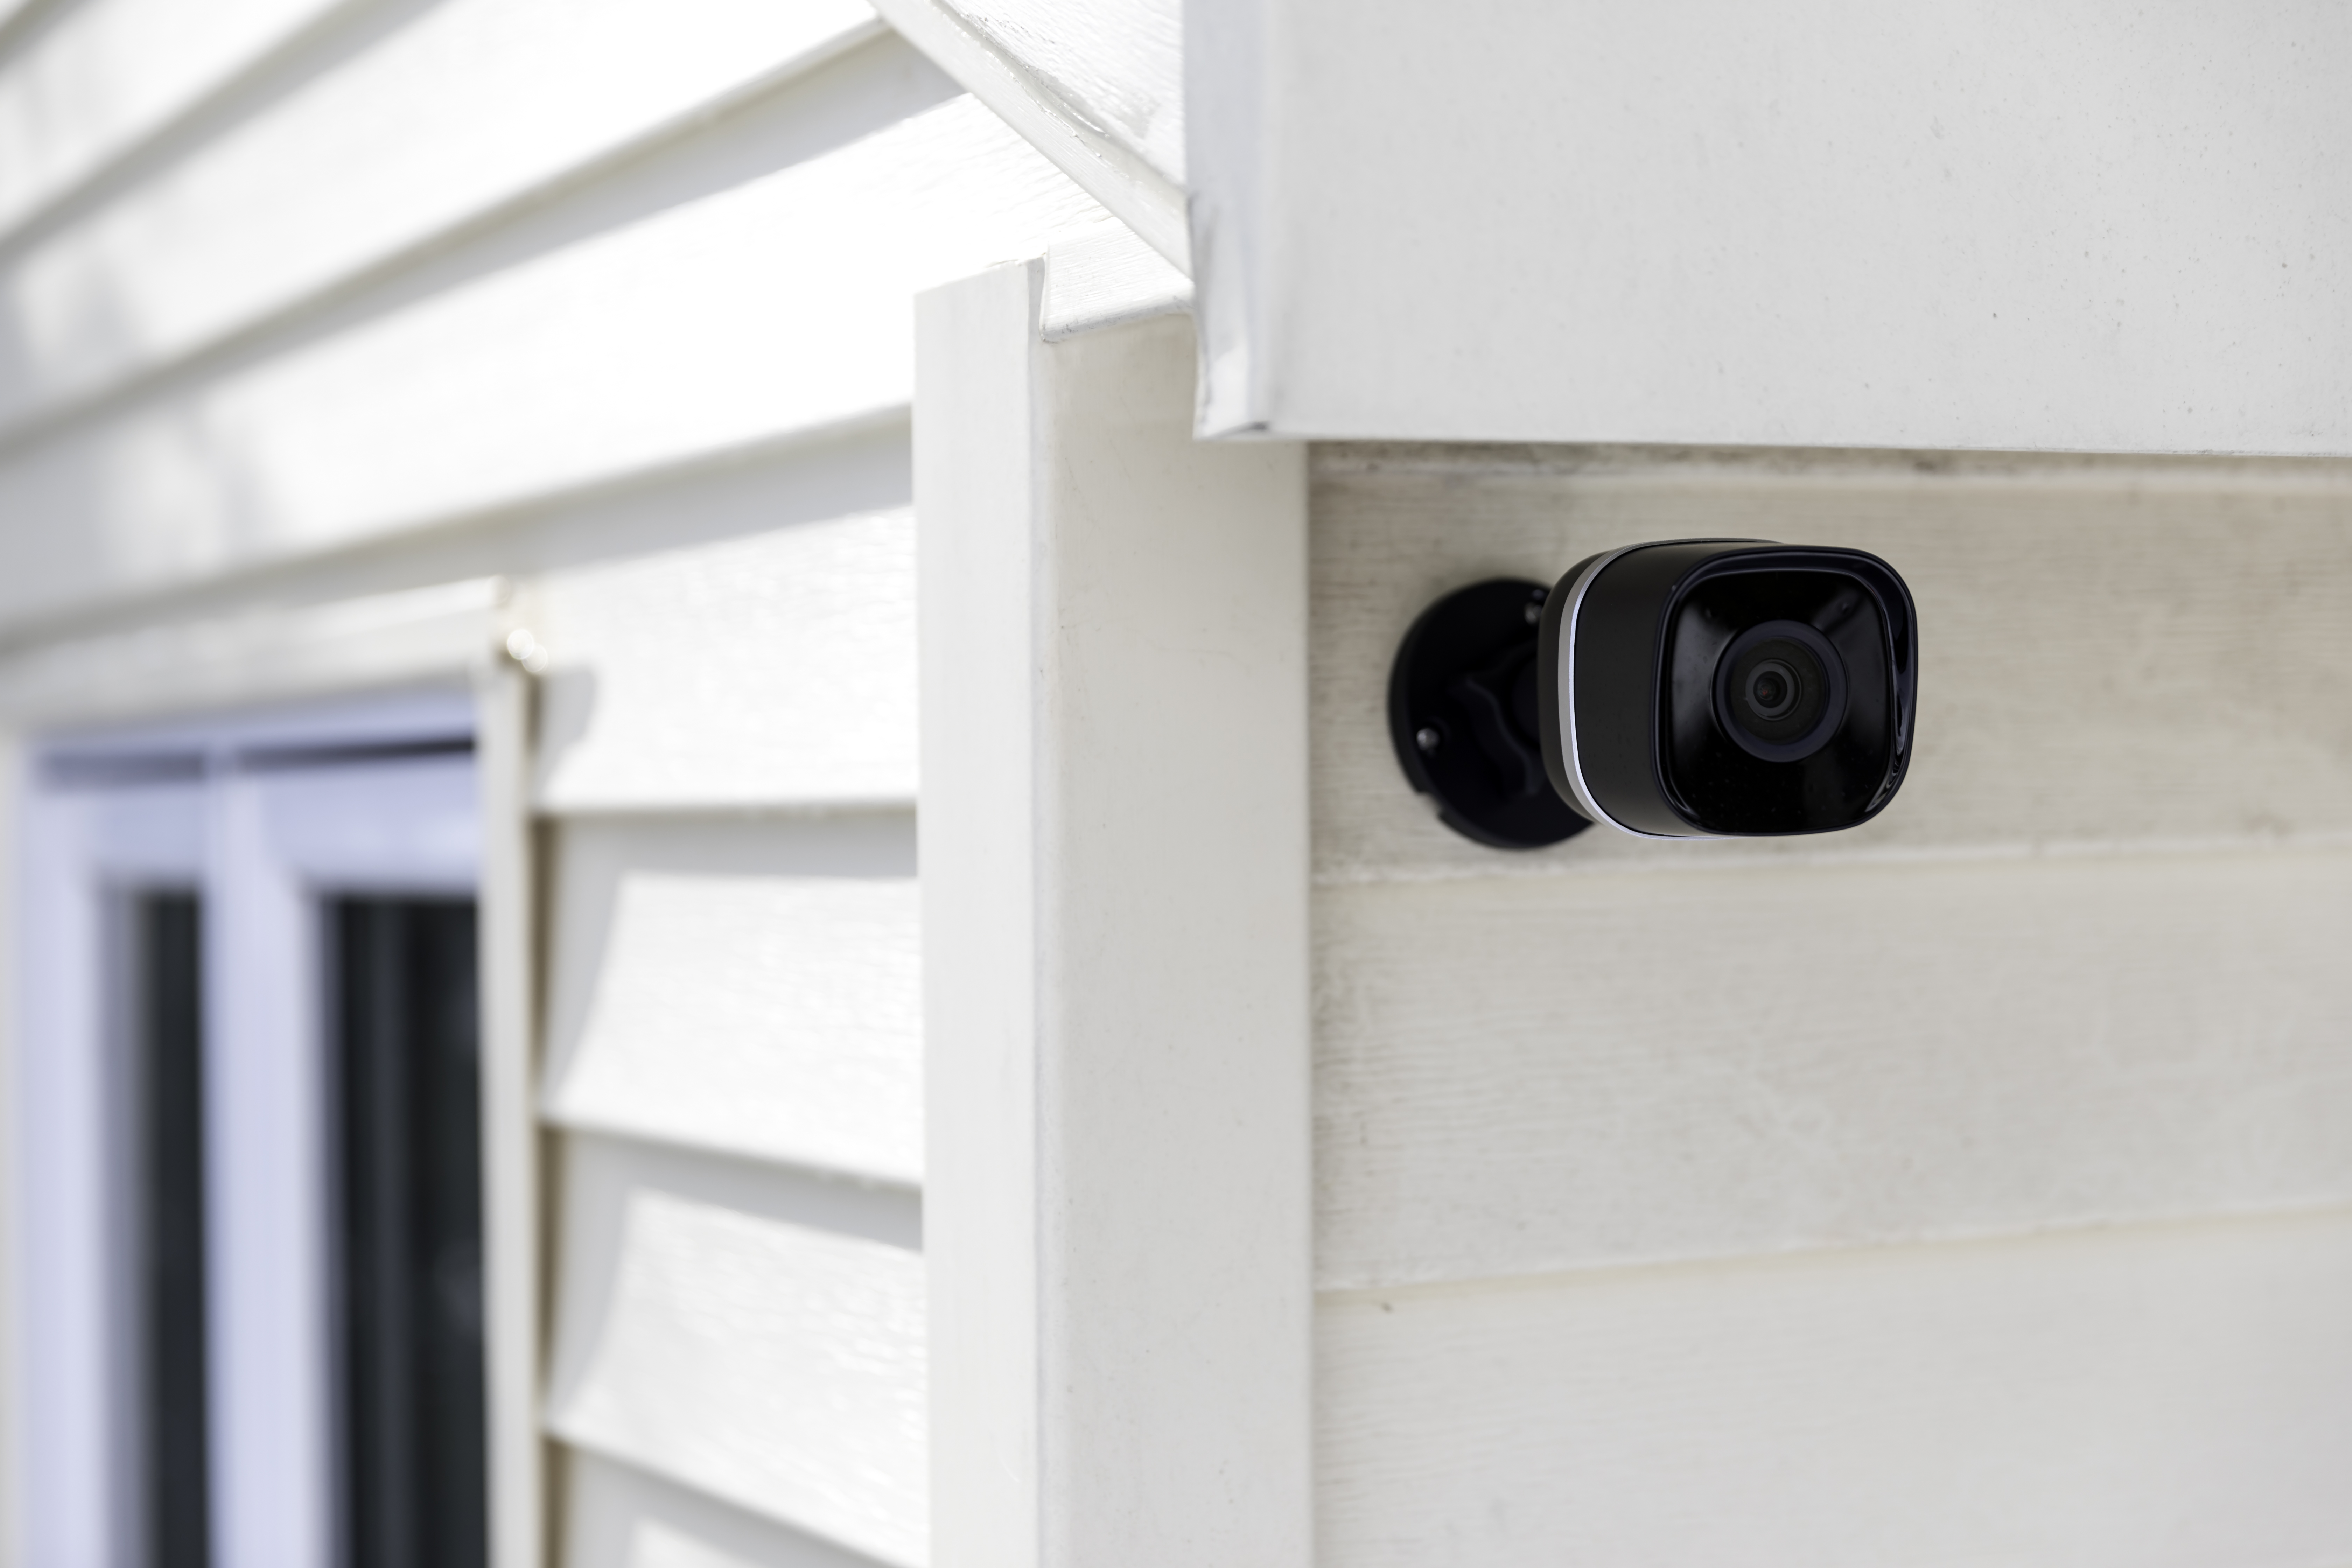 Sydney unit manager 'uses hidden cameras' to film residents